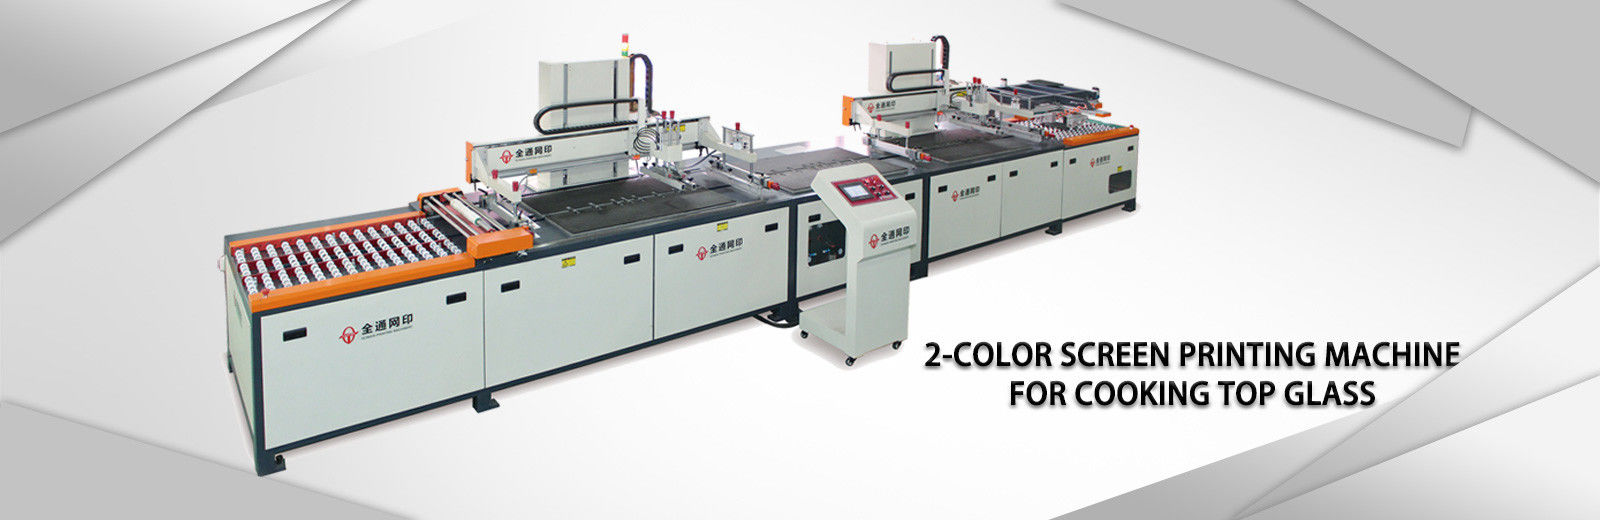 China best Glass Screen Printing Machine on sales